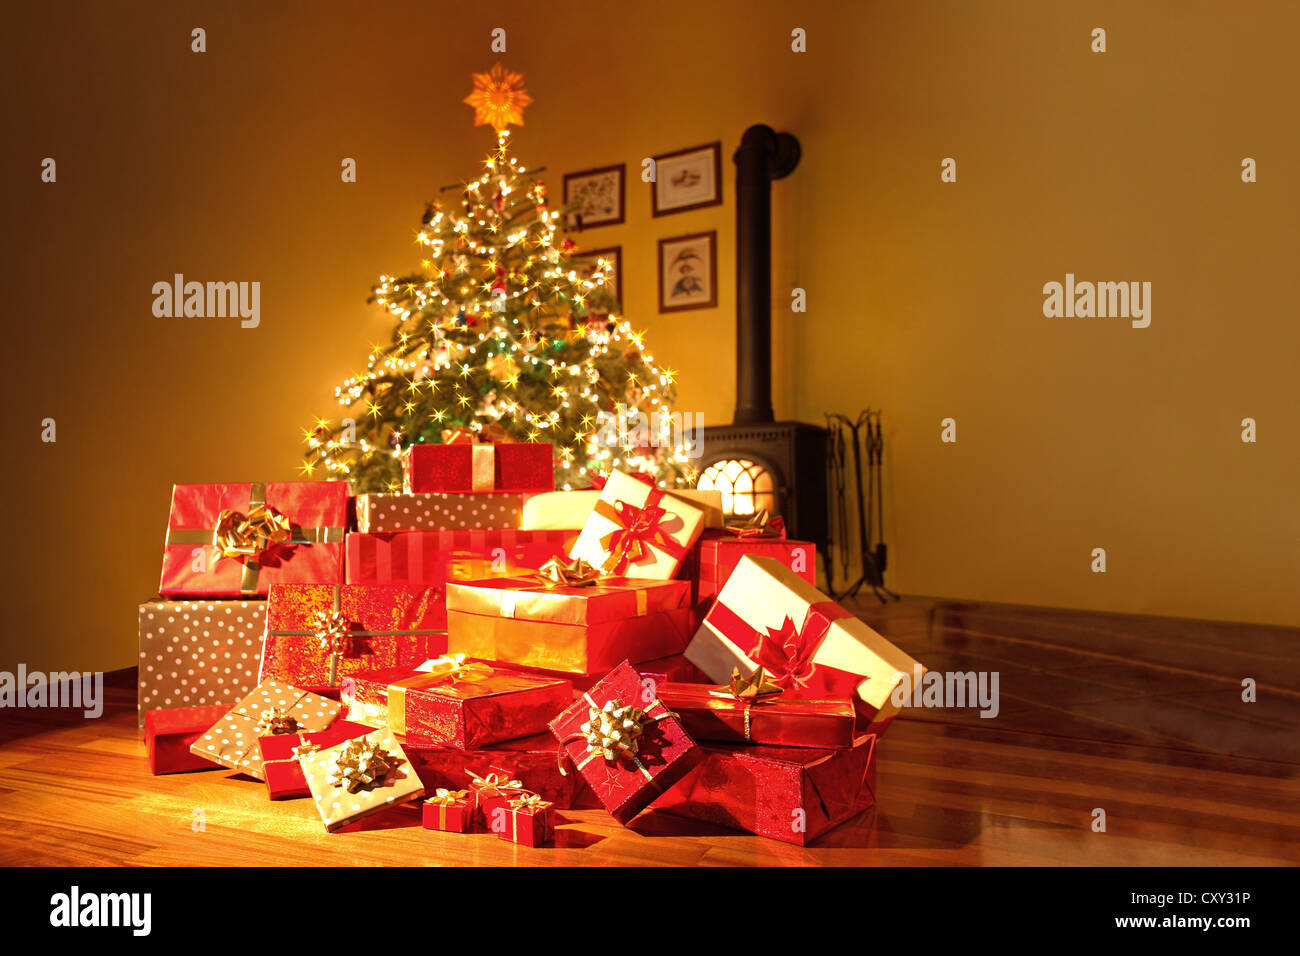 Christmas gifts and a Christmas tree in a living room - Stock Image